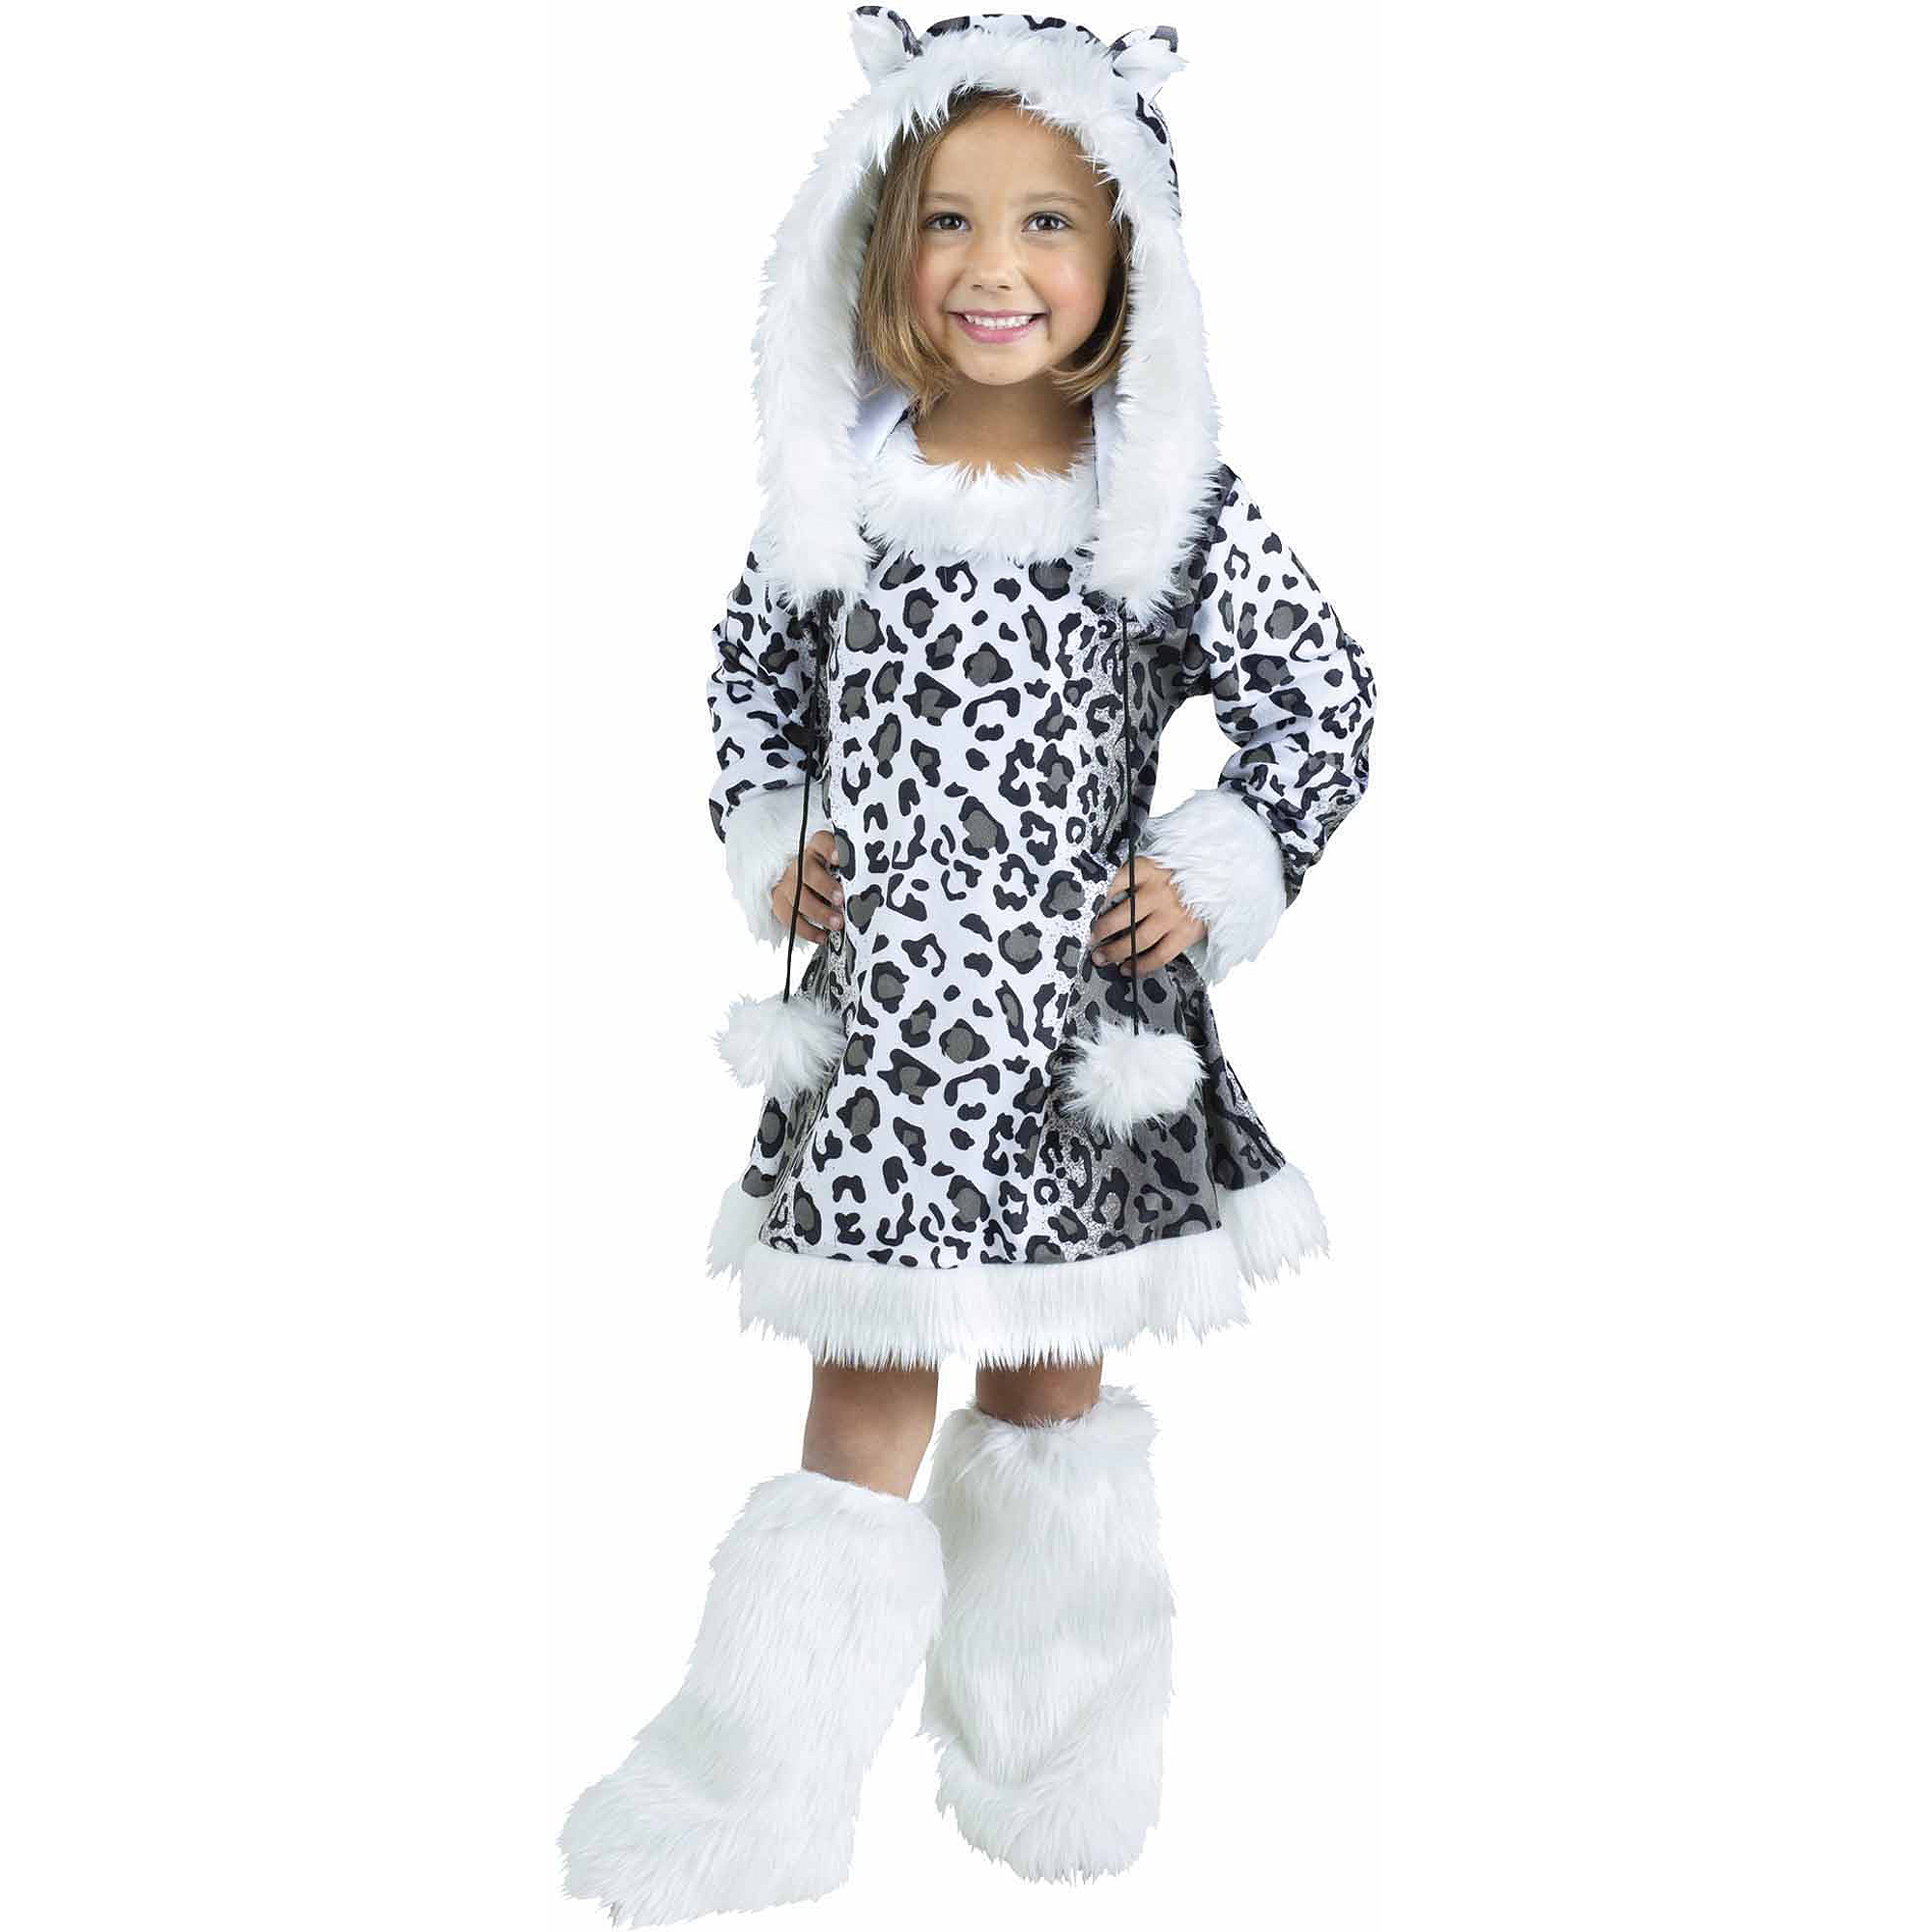 9947a61d588f Sc 1 St Walmart. image number 9 of leopard costume baby ...